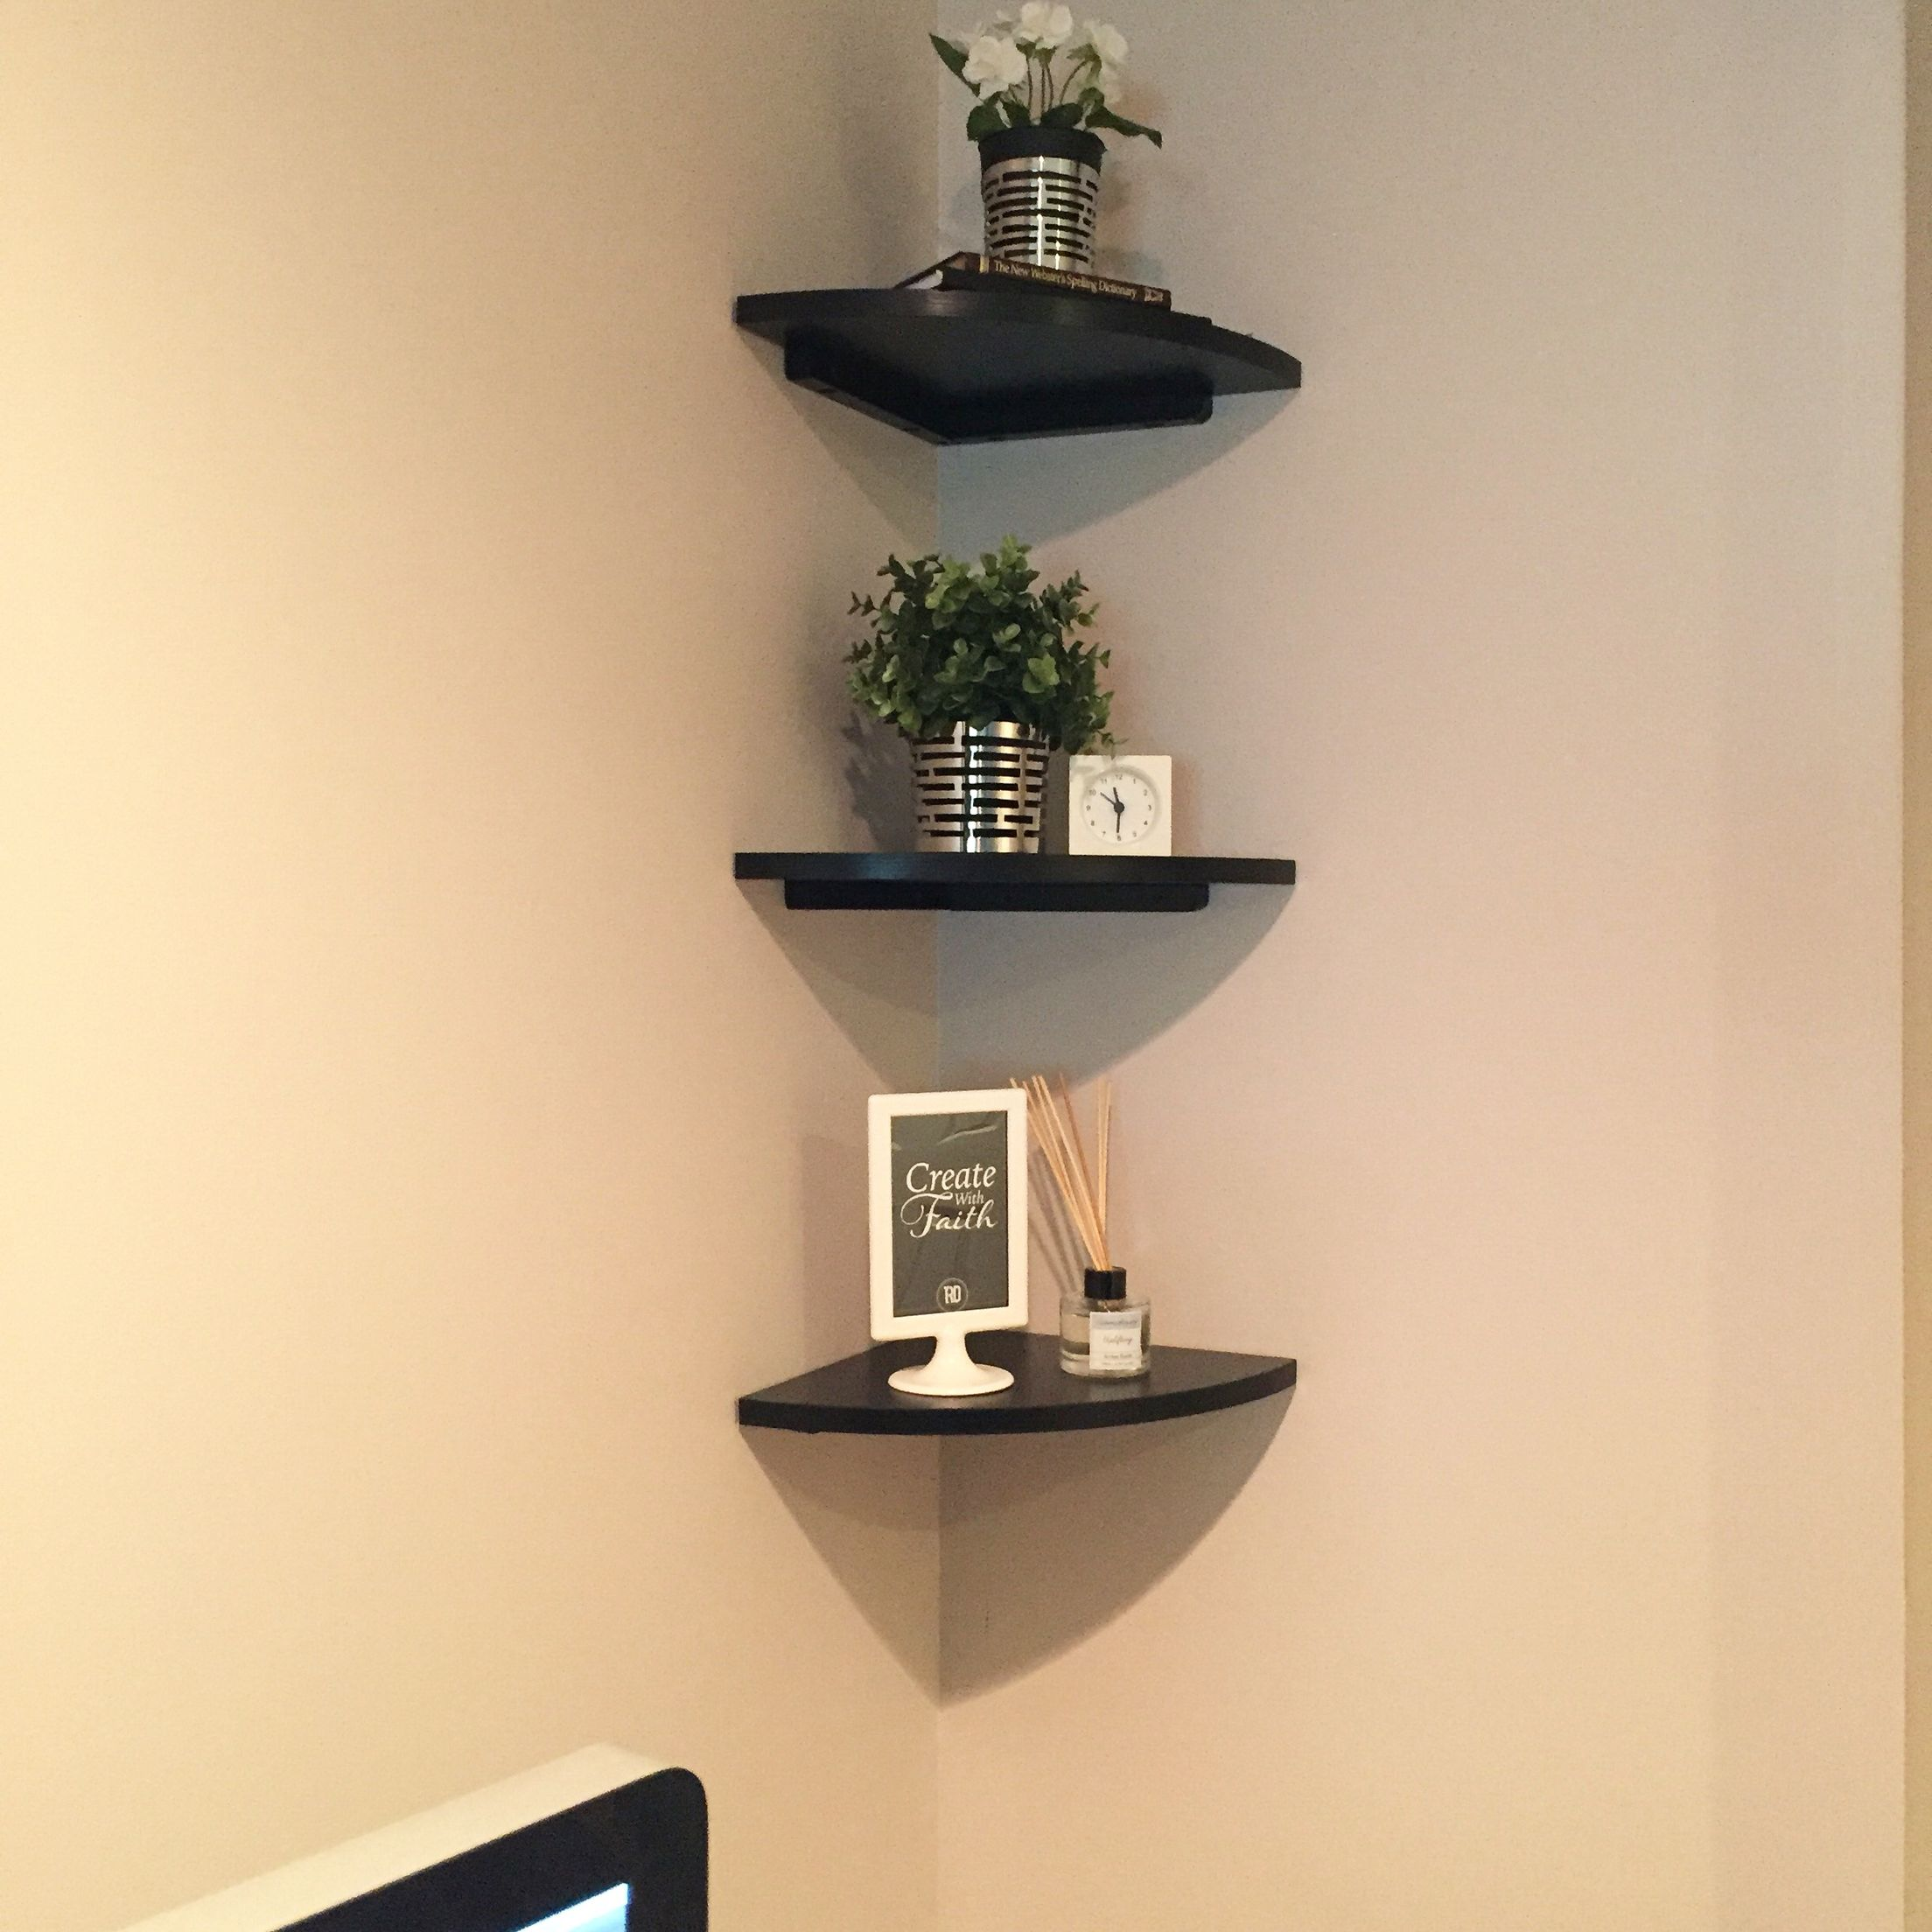 Corner Wall Office Decor Under $50 Shelves From Bed Bath